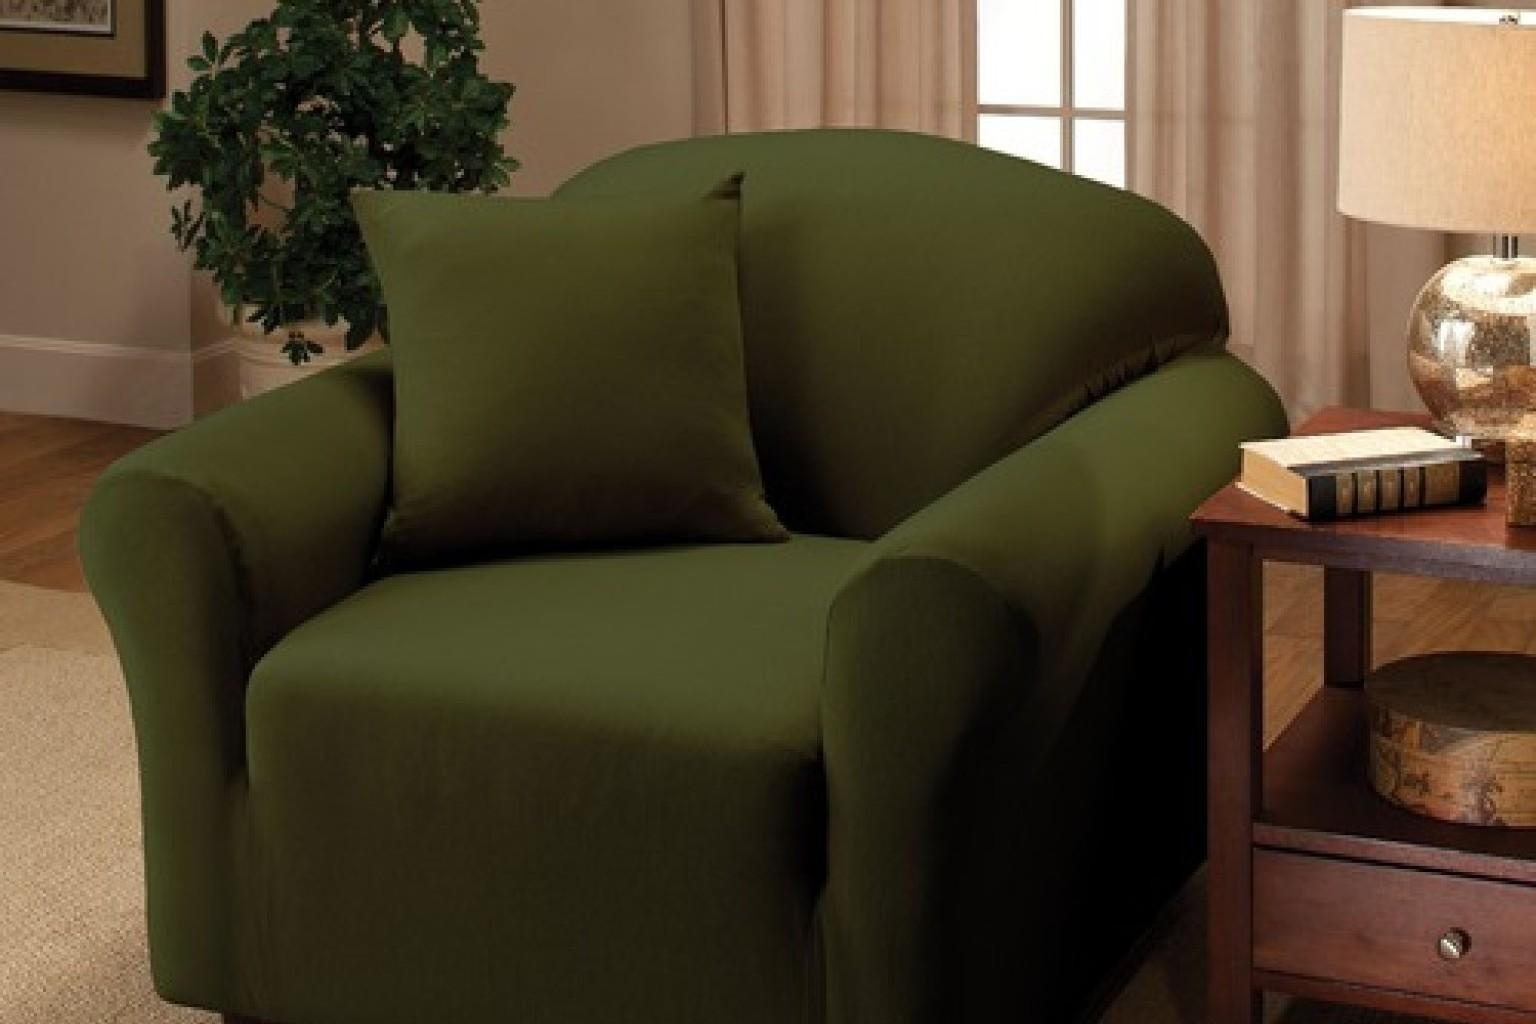 Buying Guide: The Best Slipcovers To Give Your Sofa A Fresh Look In Slipcovers For Sofas And Chairs (Image 2 of 20)